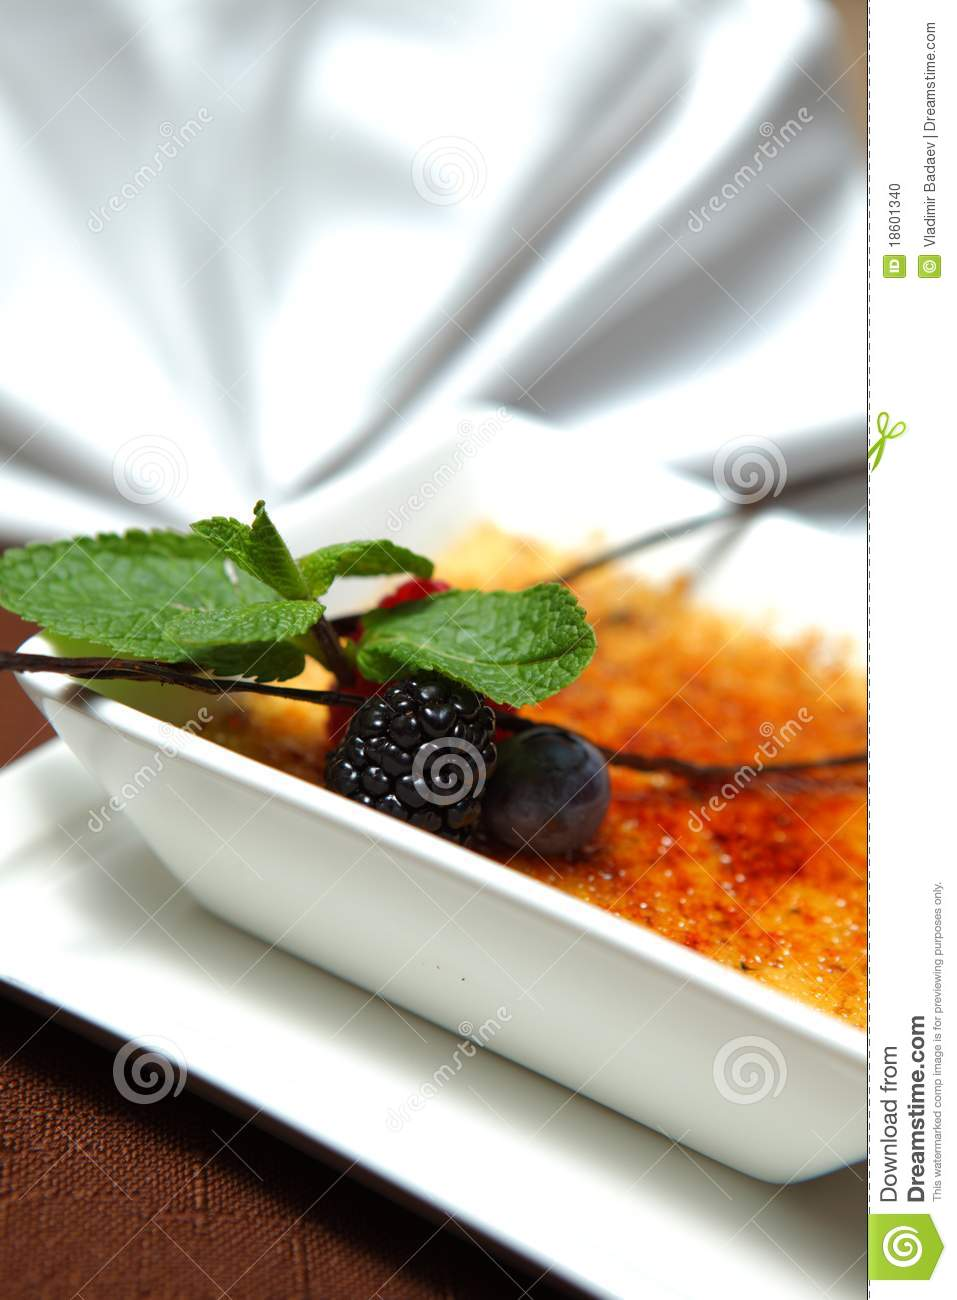 Ginger Brulee With Buried Blackberries Recipe — Dishmaps